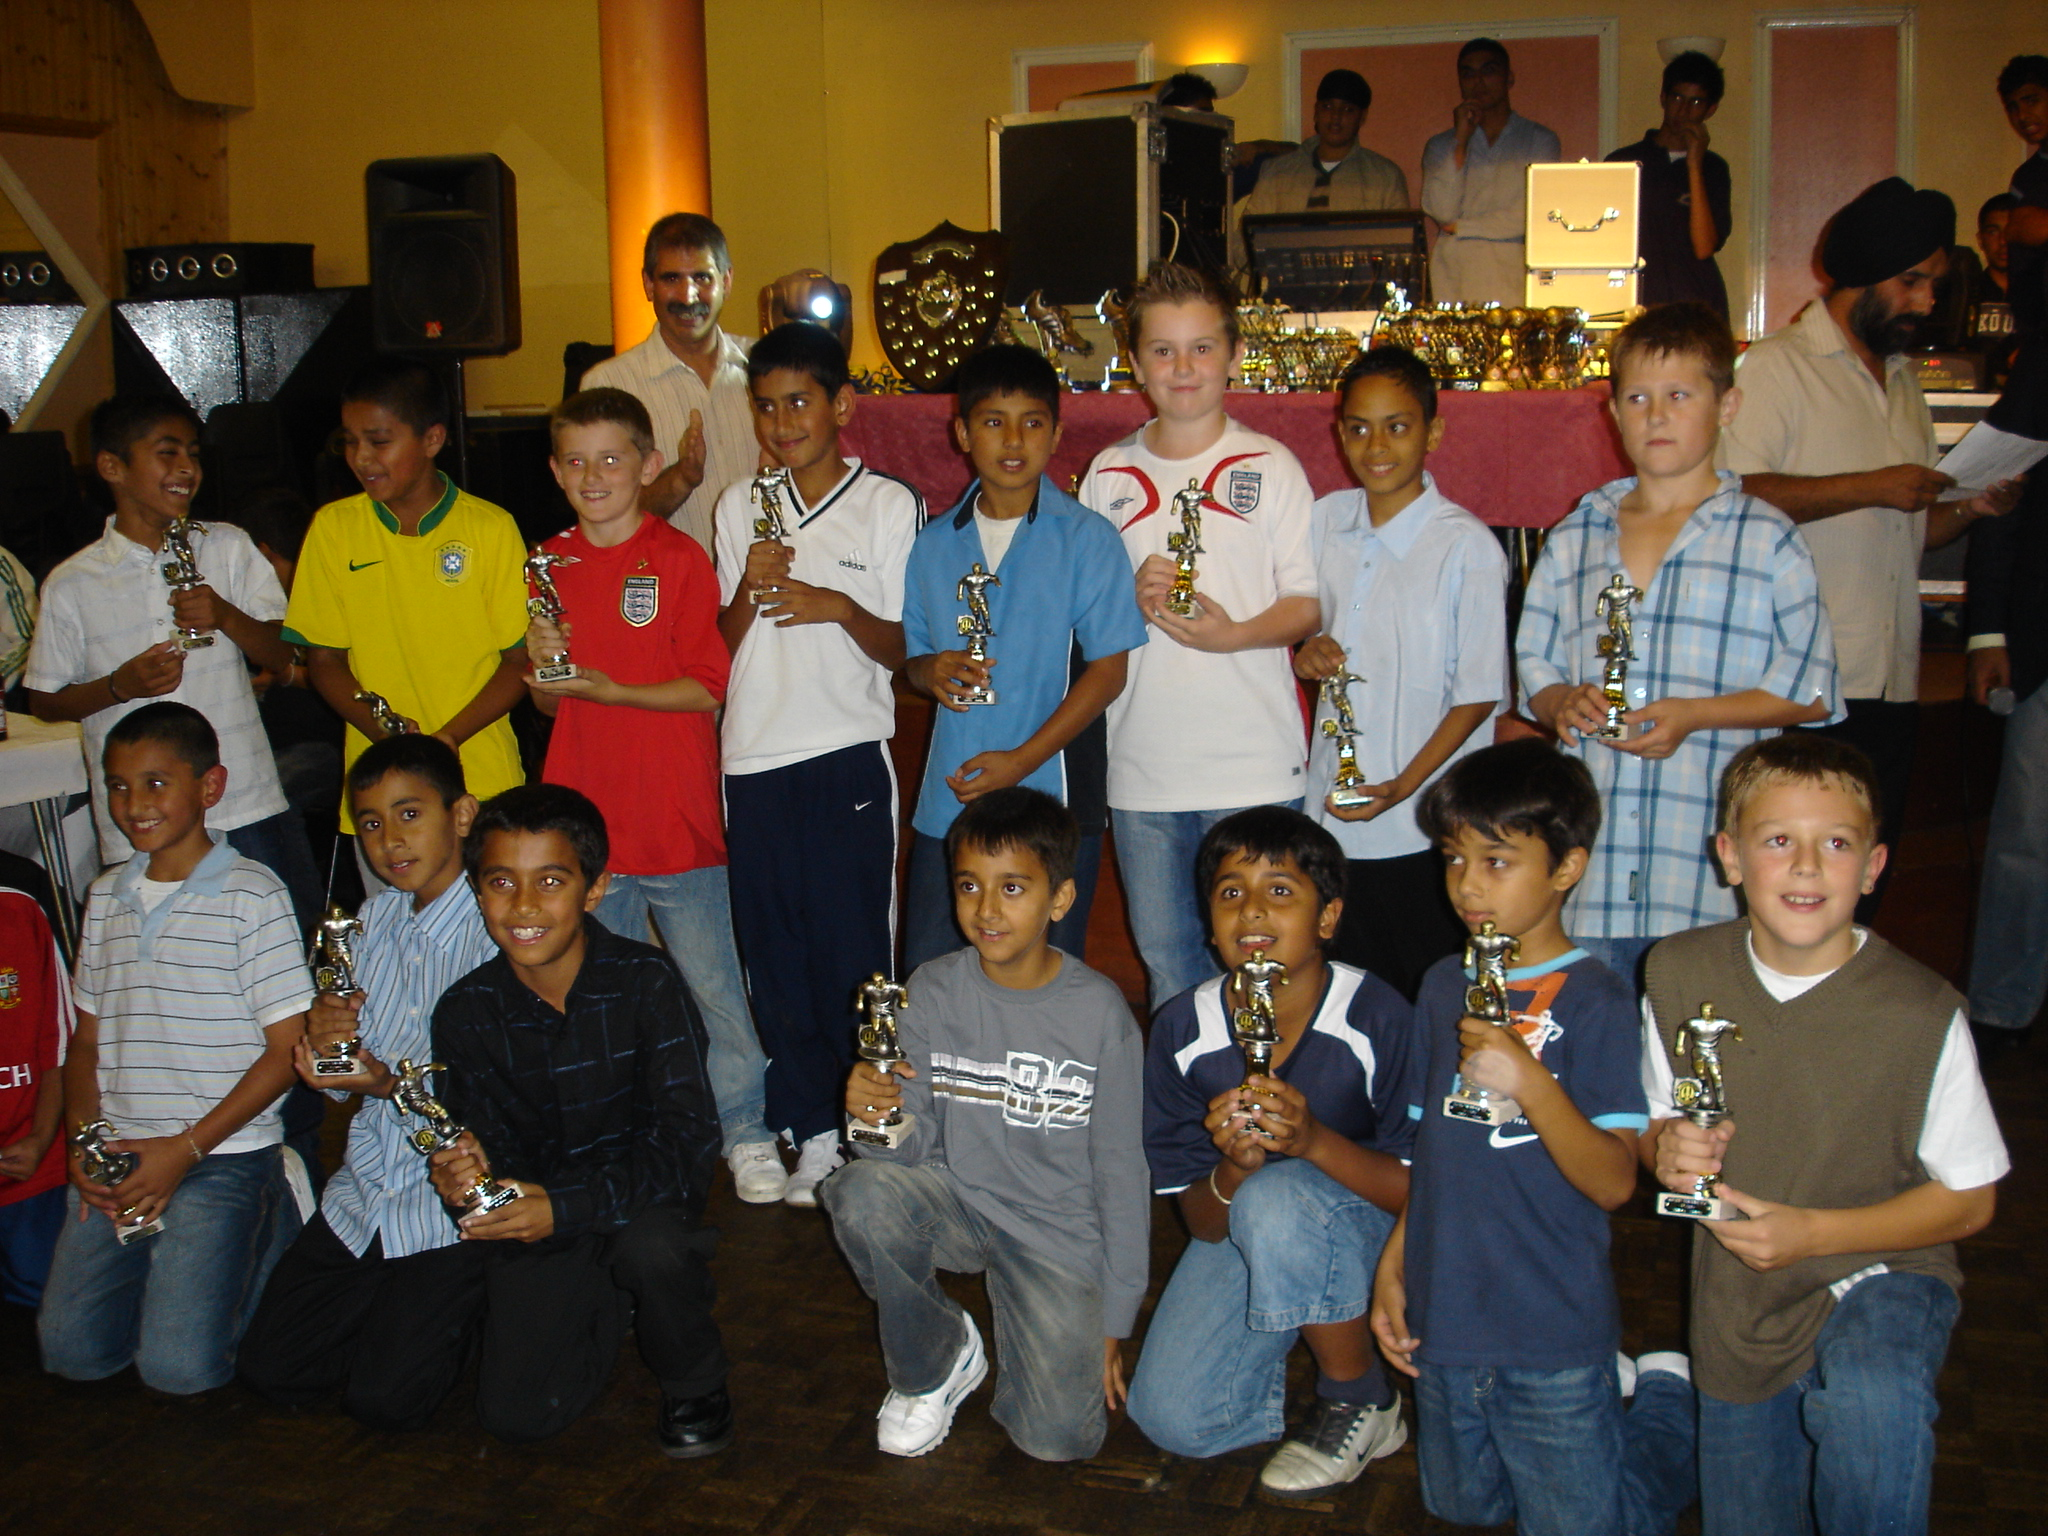 Under 9's & 10's with their awards